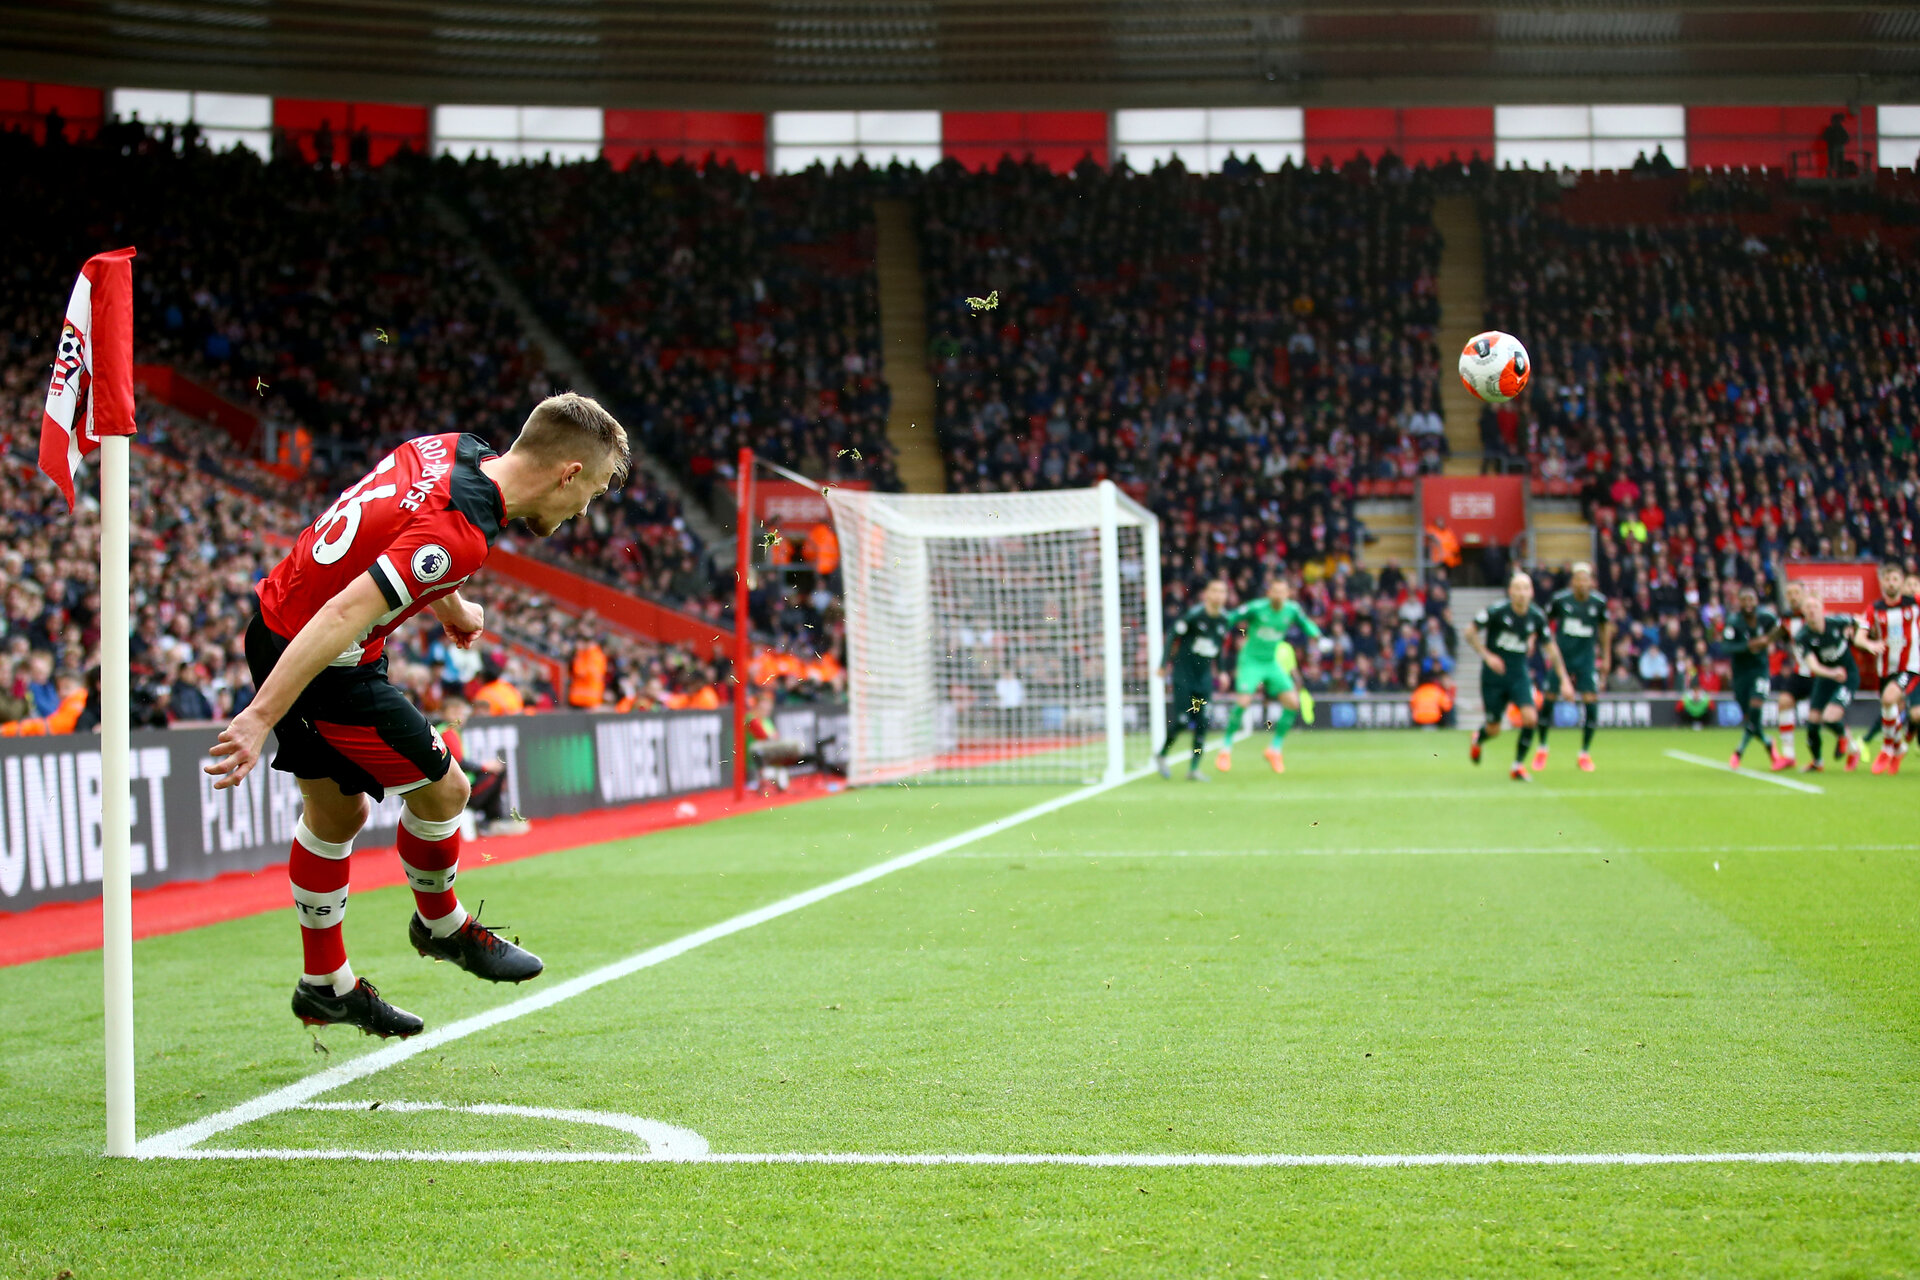 SOUTHAMPTON, ENGLAND - MARCH 07: James Ward-Prowse during the Premier League match between Southampton FC and Newcastle United at St Mary's Stadium on March 7, 2020 in Southampton, United Kingdom. (Photo by Isabelle Field/Southampton FC via Getty Images)